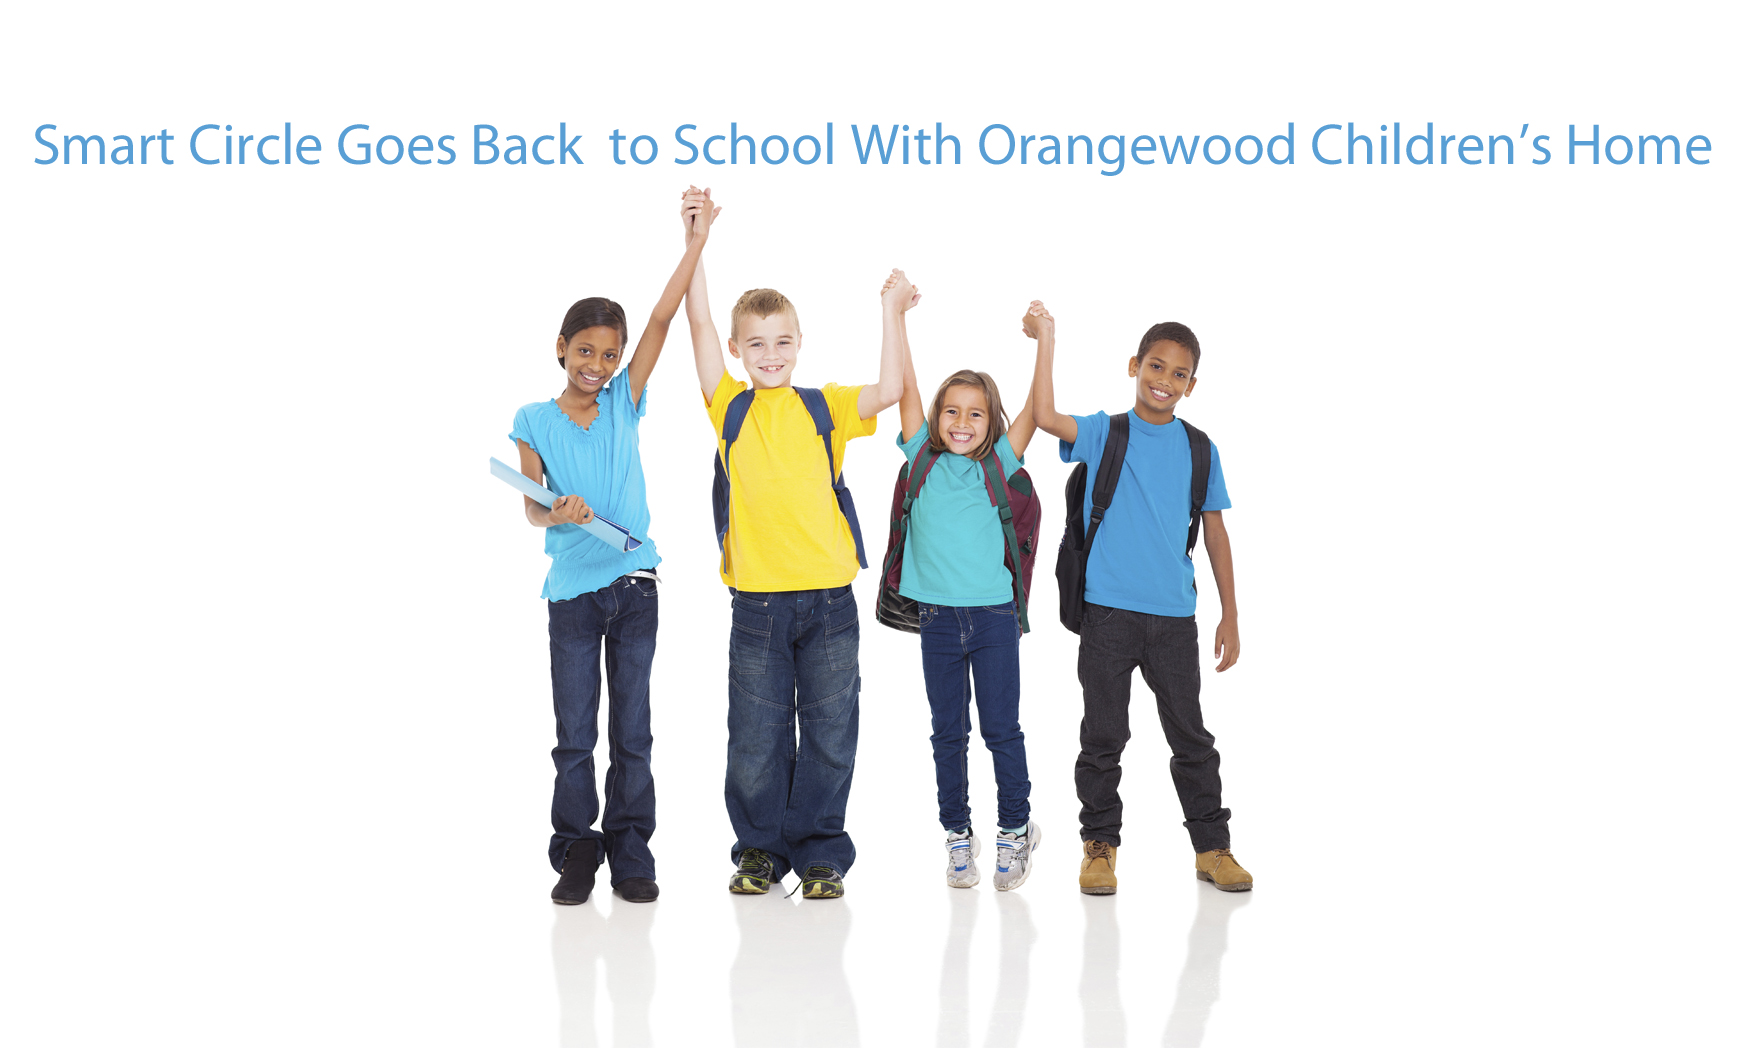 orangewood children's home